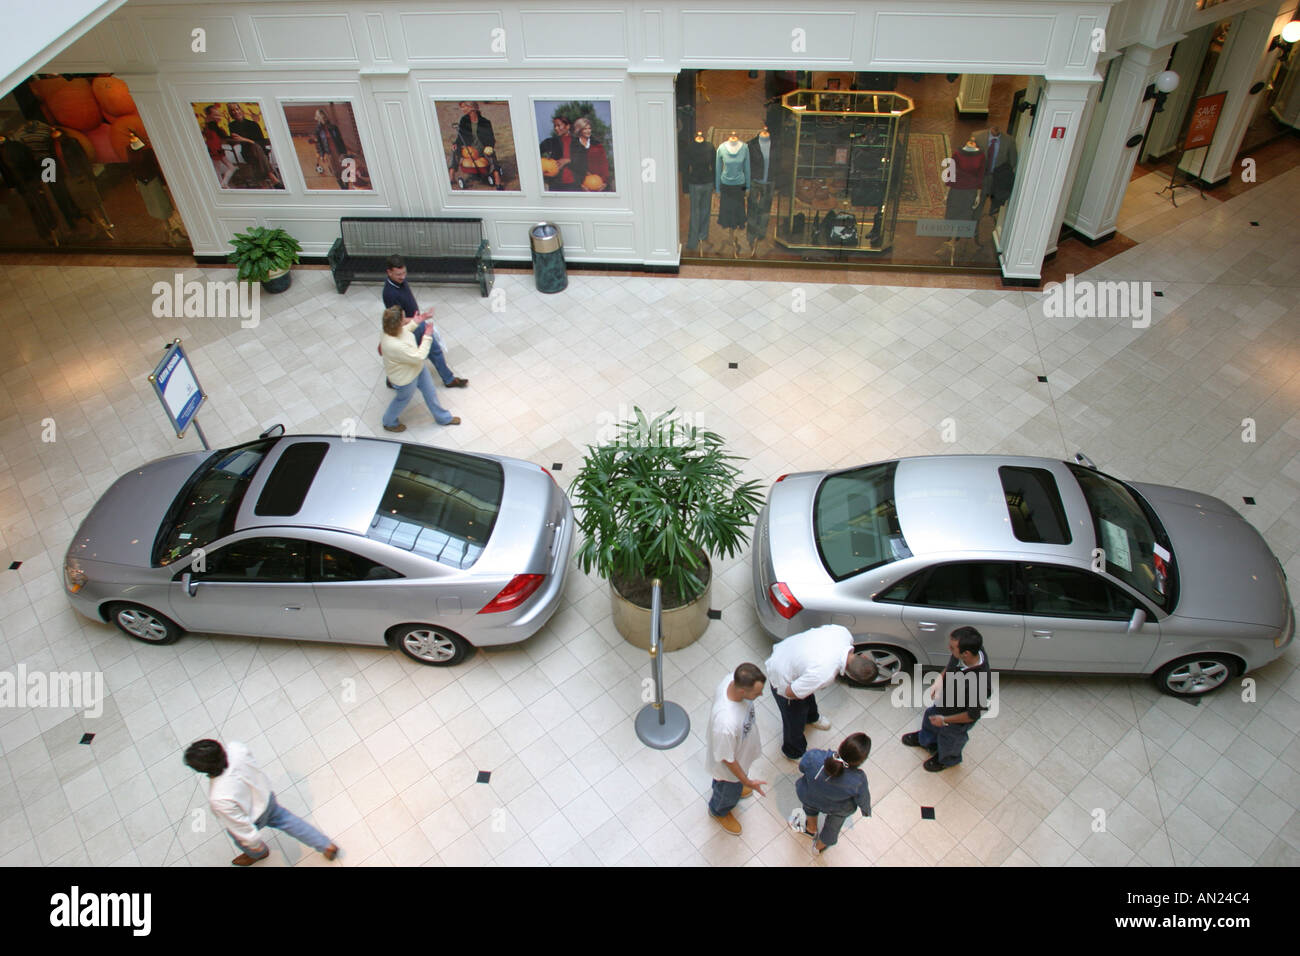 North Carolina, South, Tar Heel State, Wake County, Raleigh, Crabtree Valley Mall, largest, shopping shopper shoppers Stock Photo